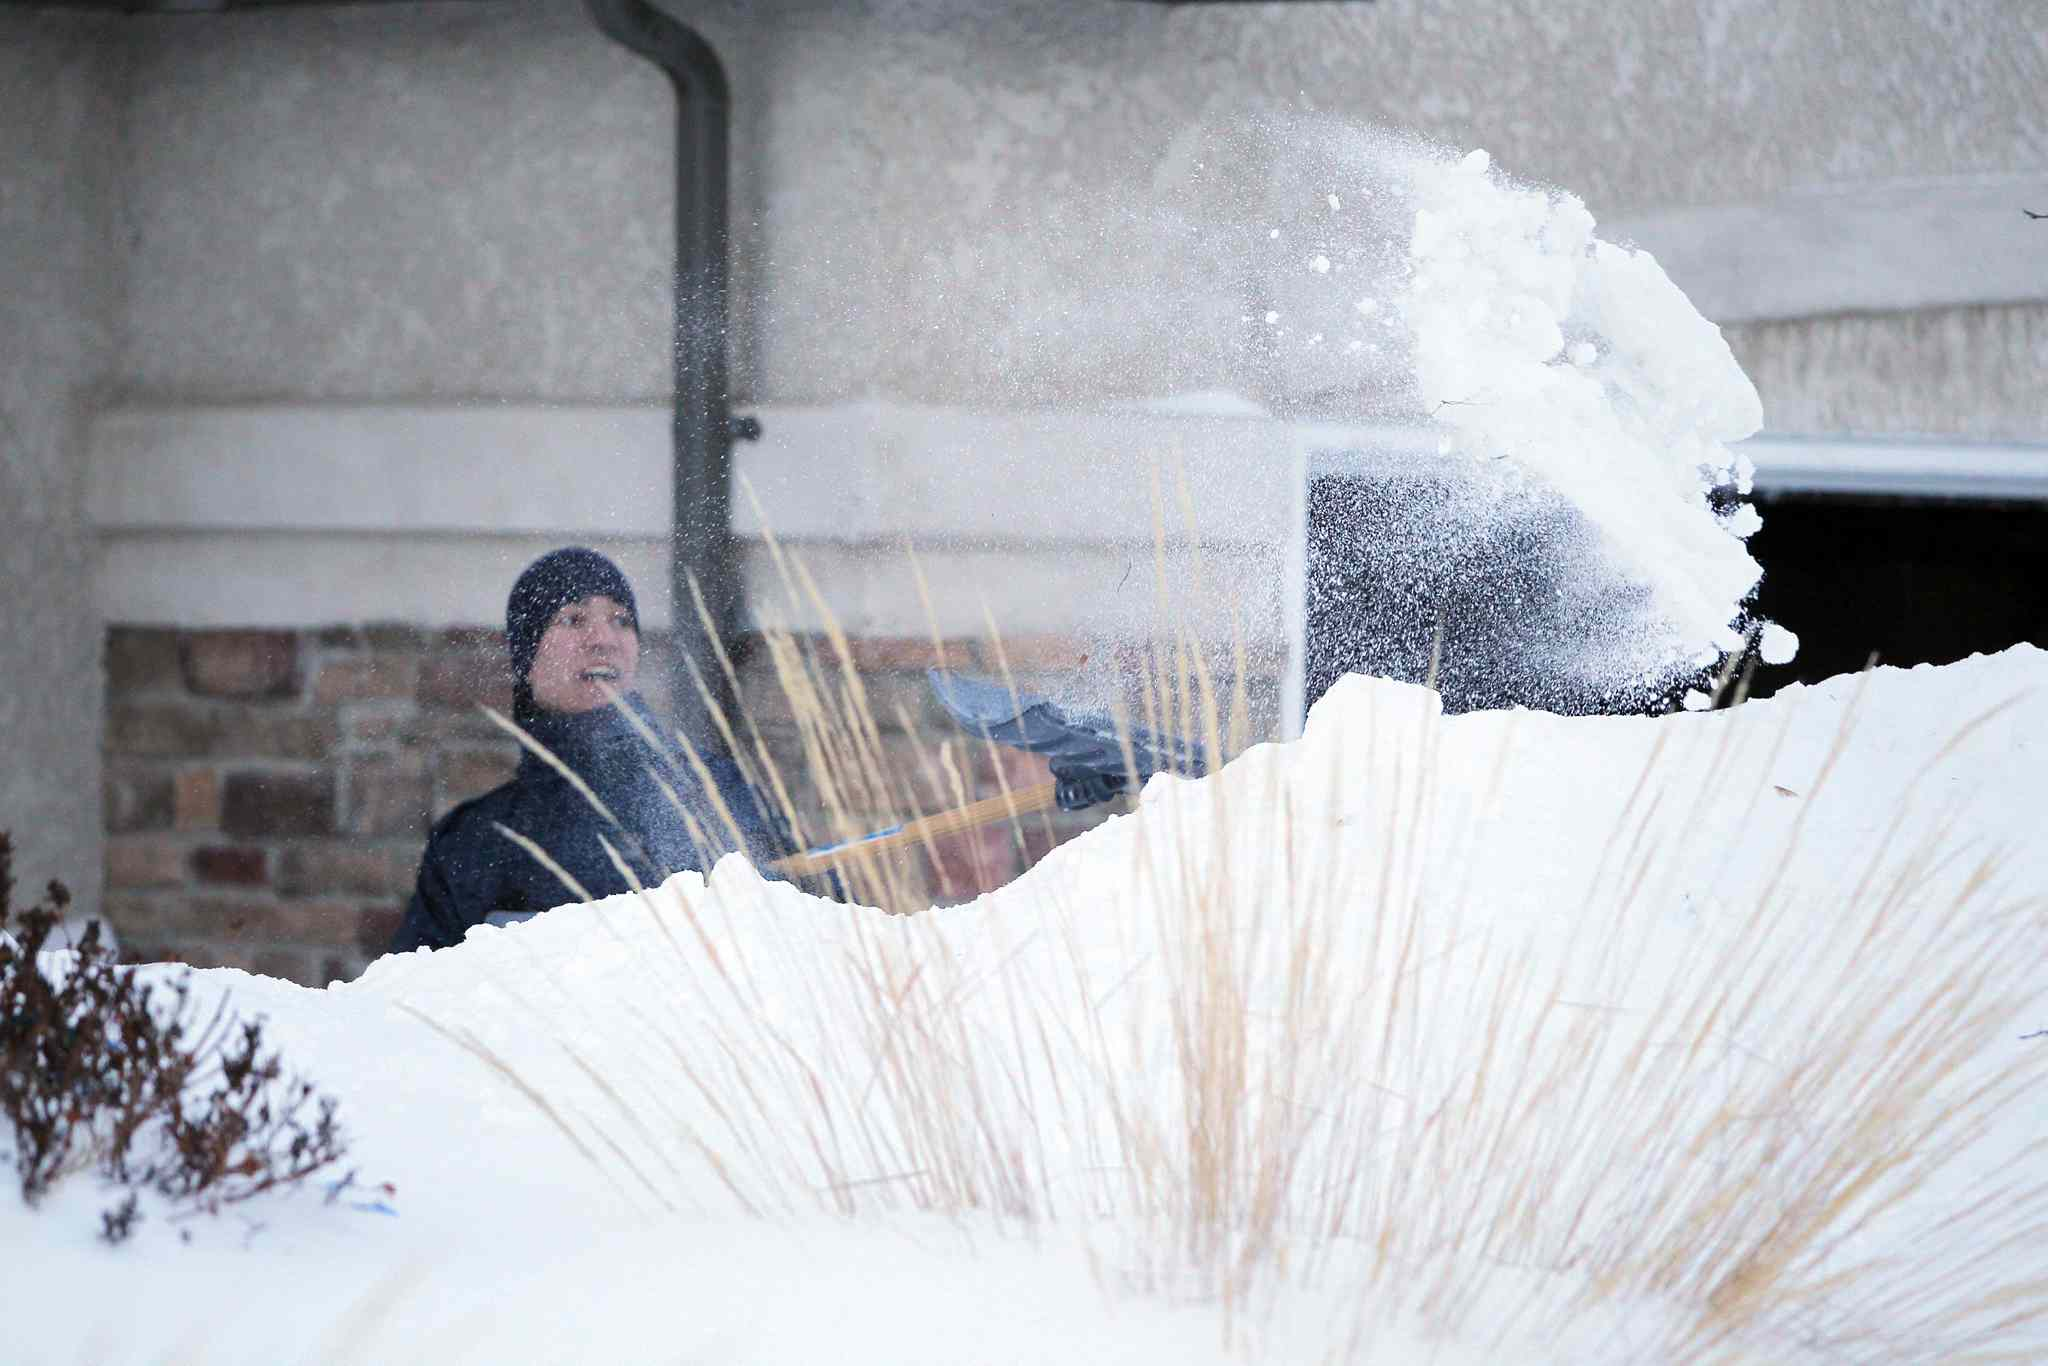 Darren Melanson shovels snow on Lyndale Drive in mid-February. Though Winnipeg is infamous for its harsh winters, this one has already been colder and snowier than many in recent memory.